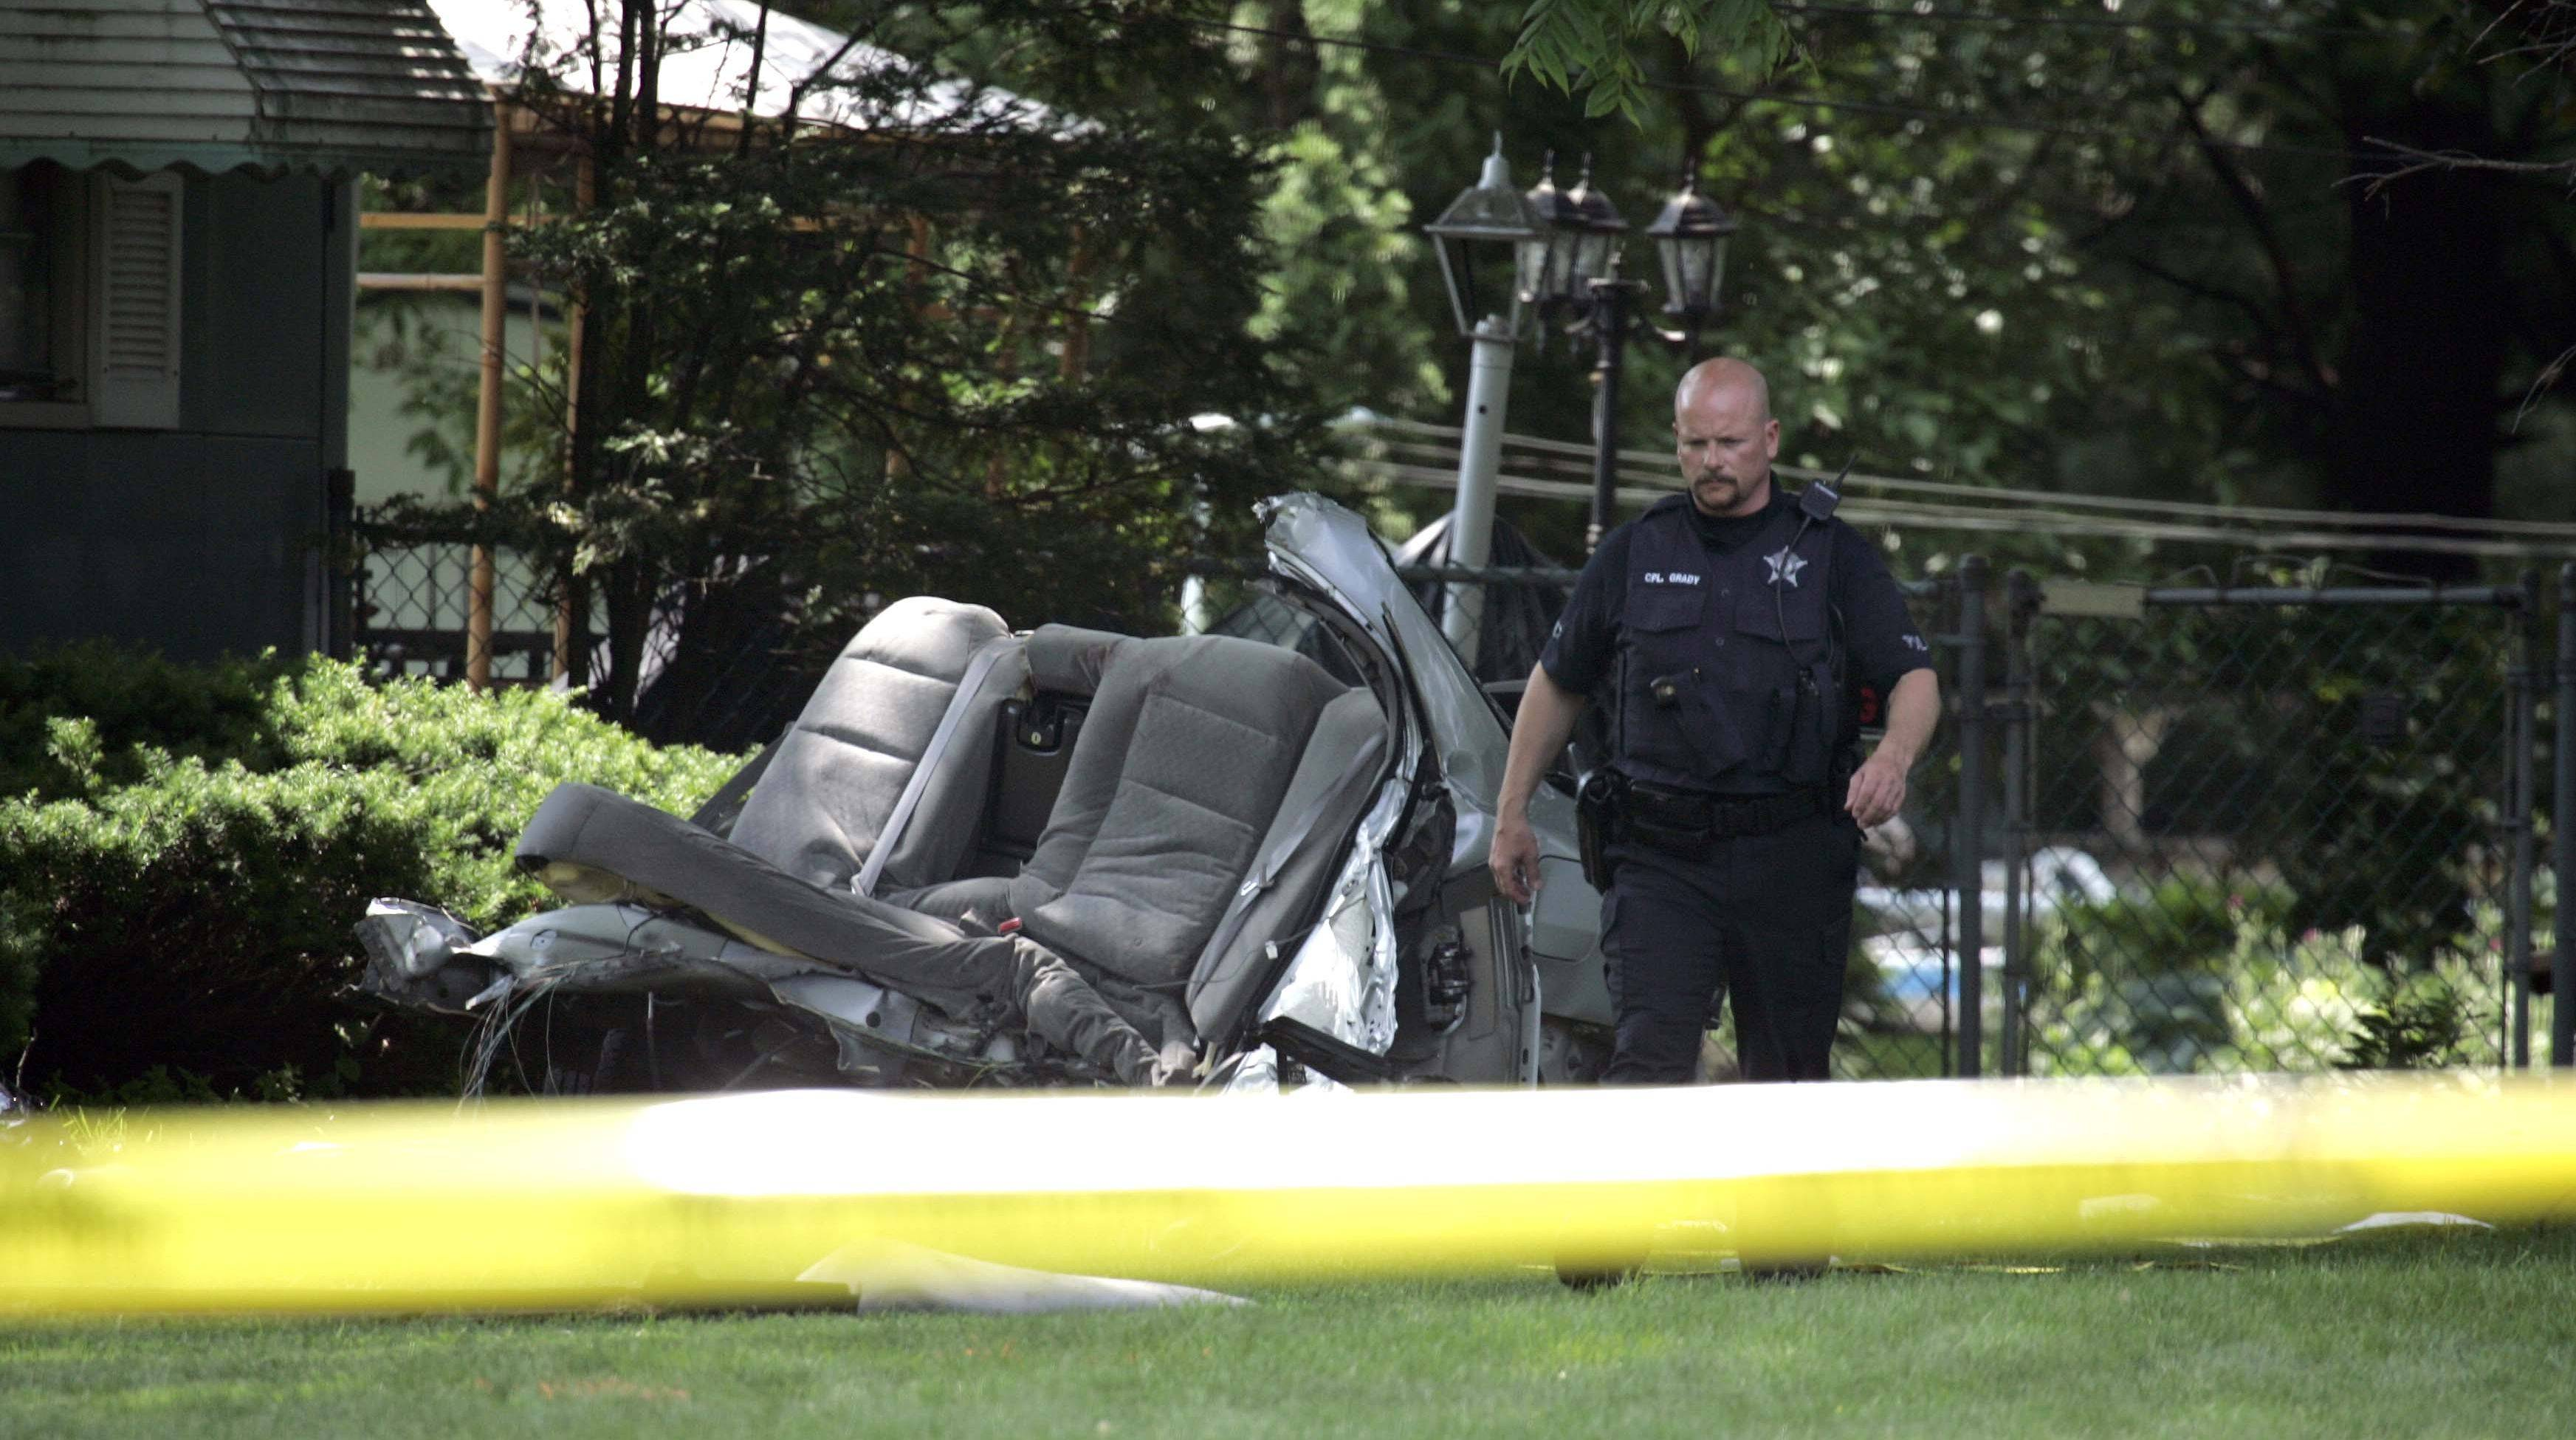 Prospect Heights police Cpl. Robert Grady inspects the scene of an accident where three teenagers died early Saturday. A fourth teen was hospitalized after the one-car accident on the 100 block of Camp McDonald Road in Prospect Heights.